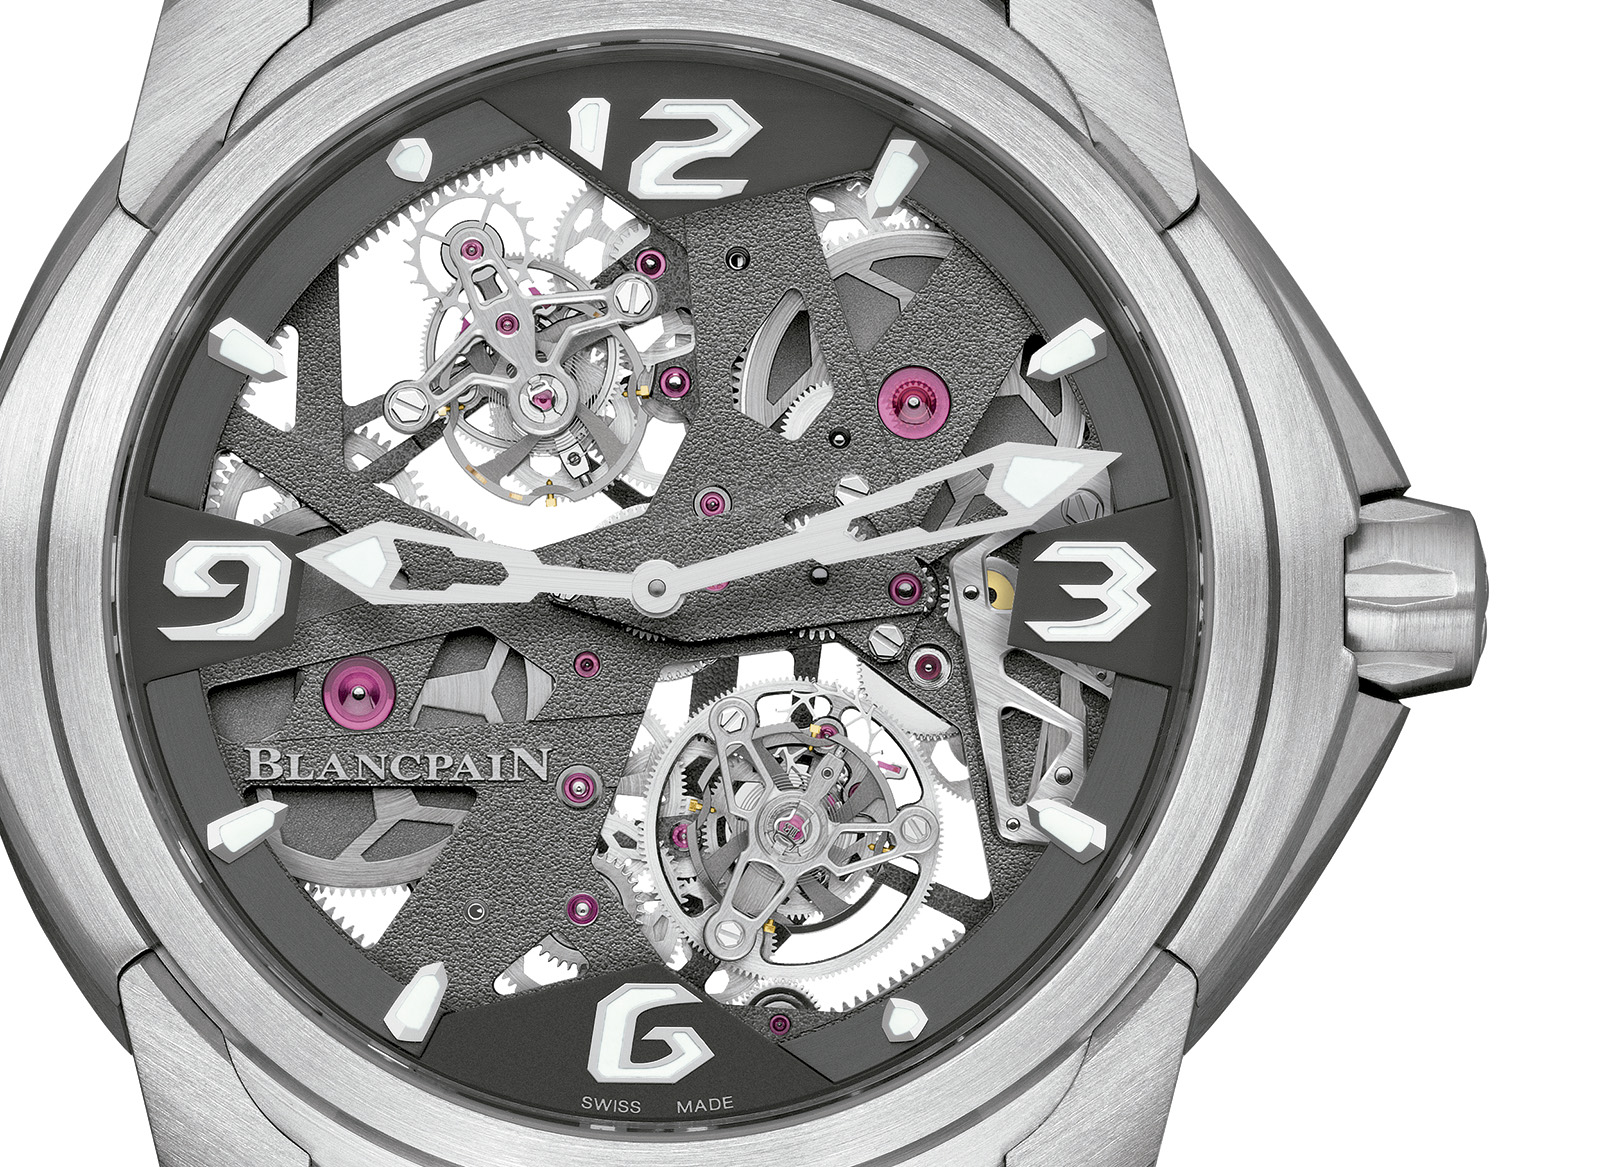 Blancpain L-Evoultion Tourbillon Carrousel crop esfera